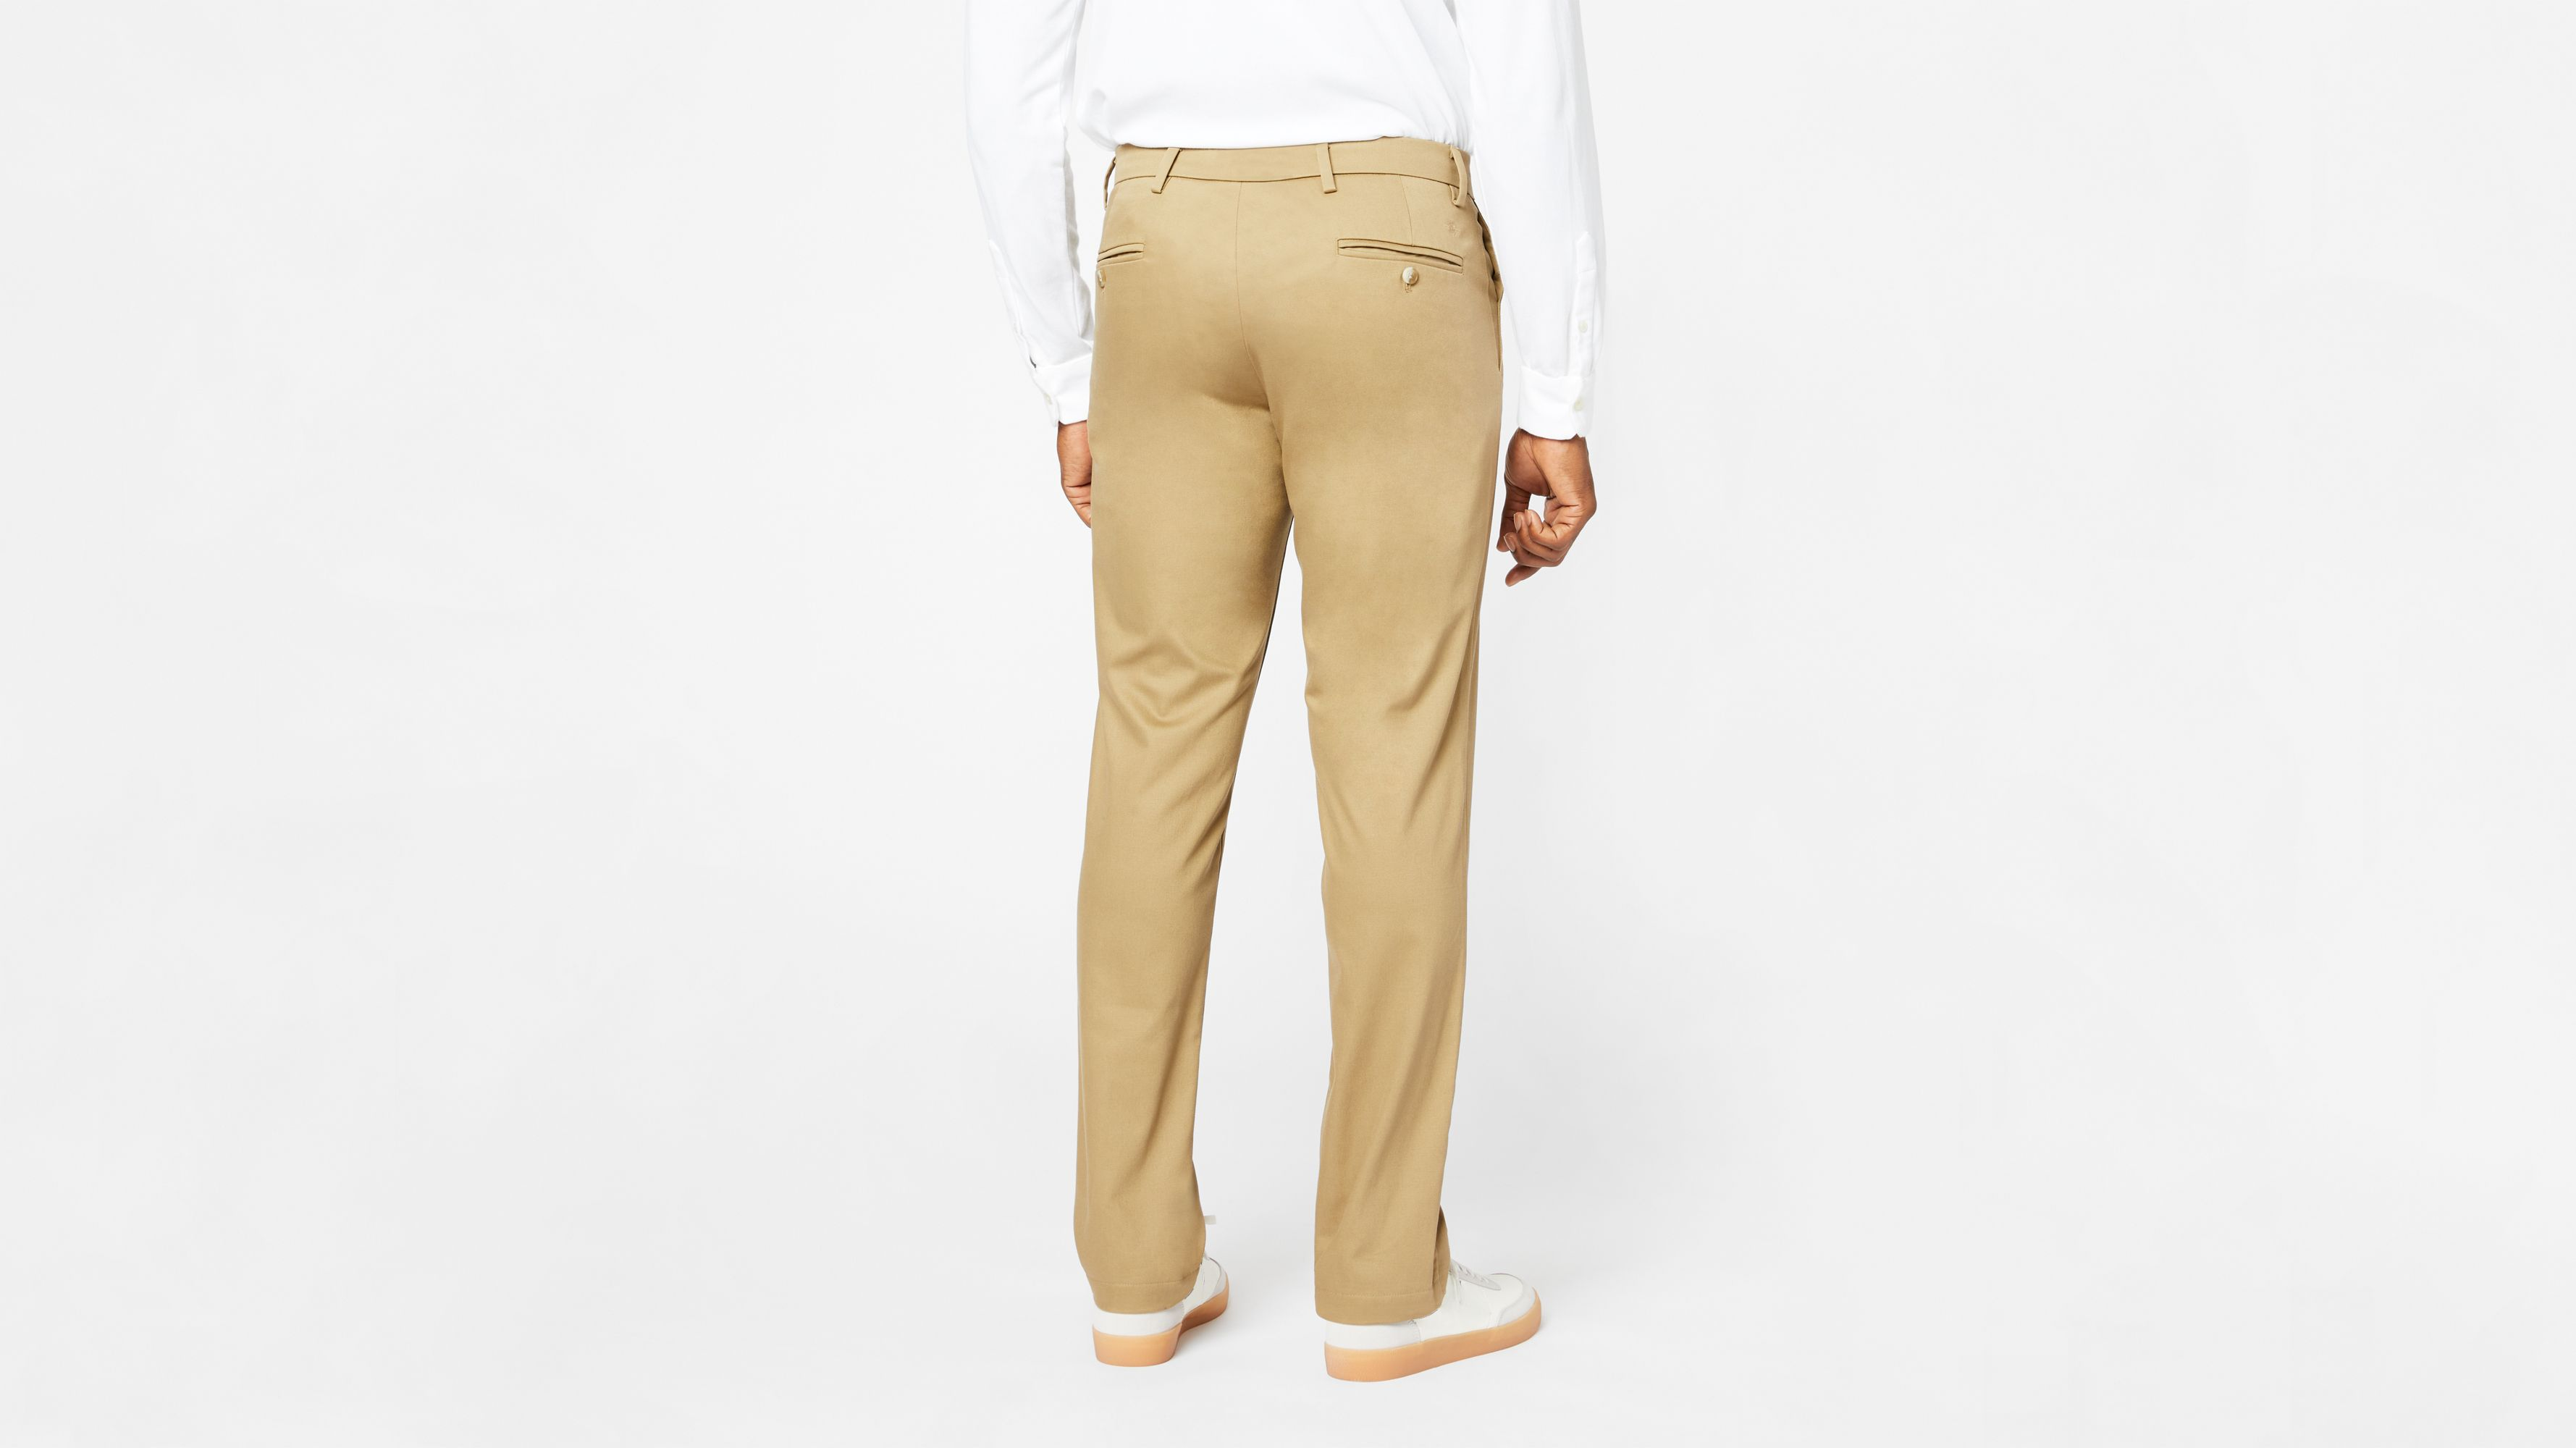 364a3f4013691f Signature Khaki Pants, Athletic Fit - Tan 679760004 | Dockers® US